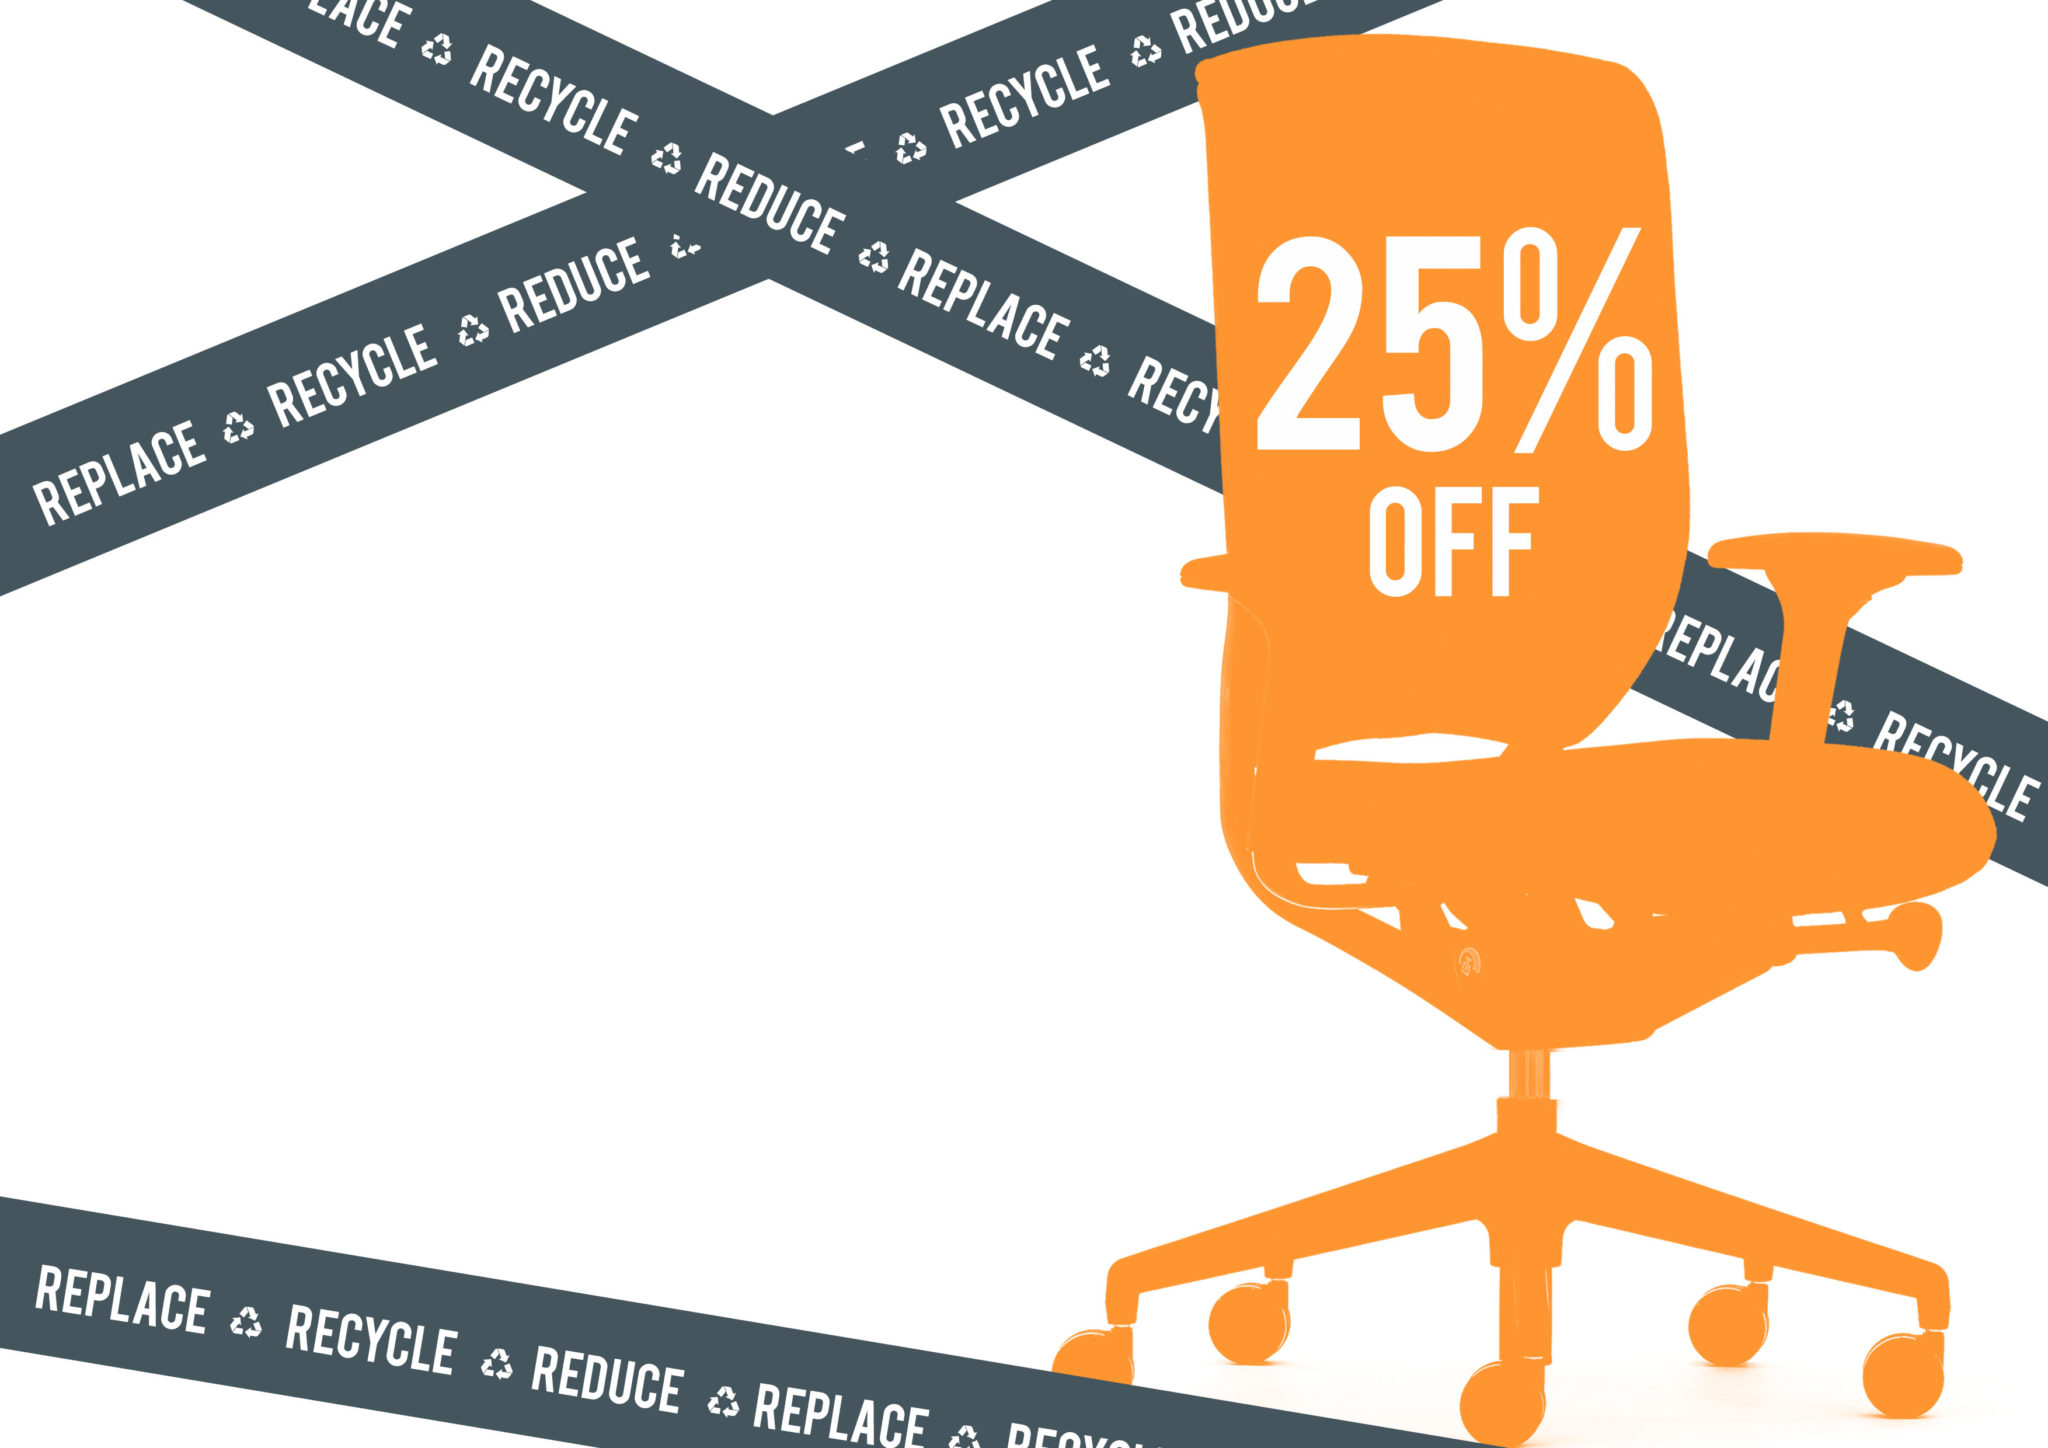 furniture recycling Brighton, office chair discounts, recycled office furniture